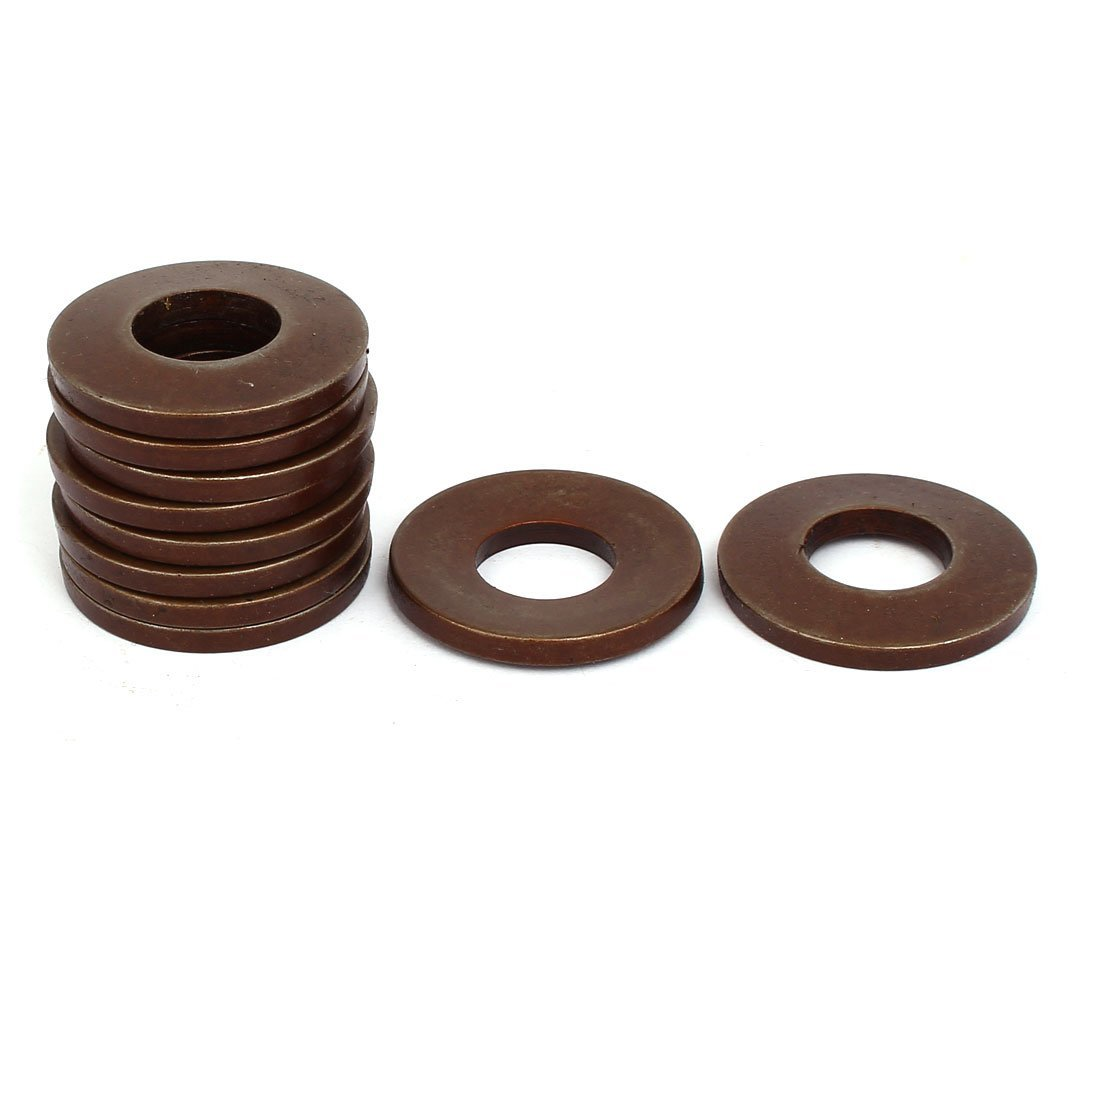 uxcell 35mm Outer Dia 15mm Inner Dia 3.5mm Thickness Metric Belleville Spring Washer 10pcs